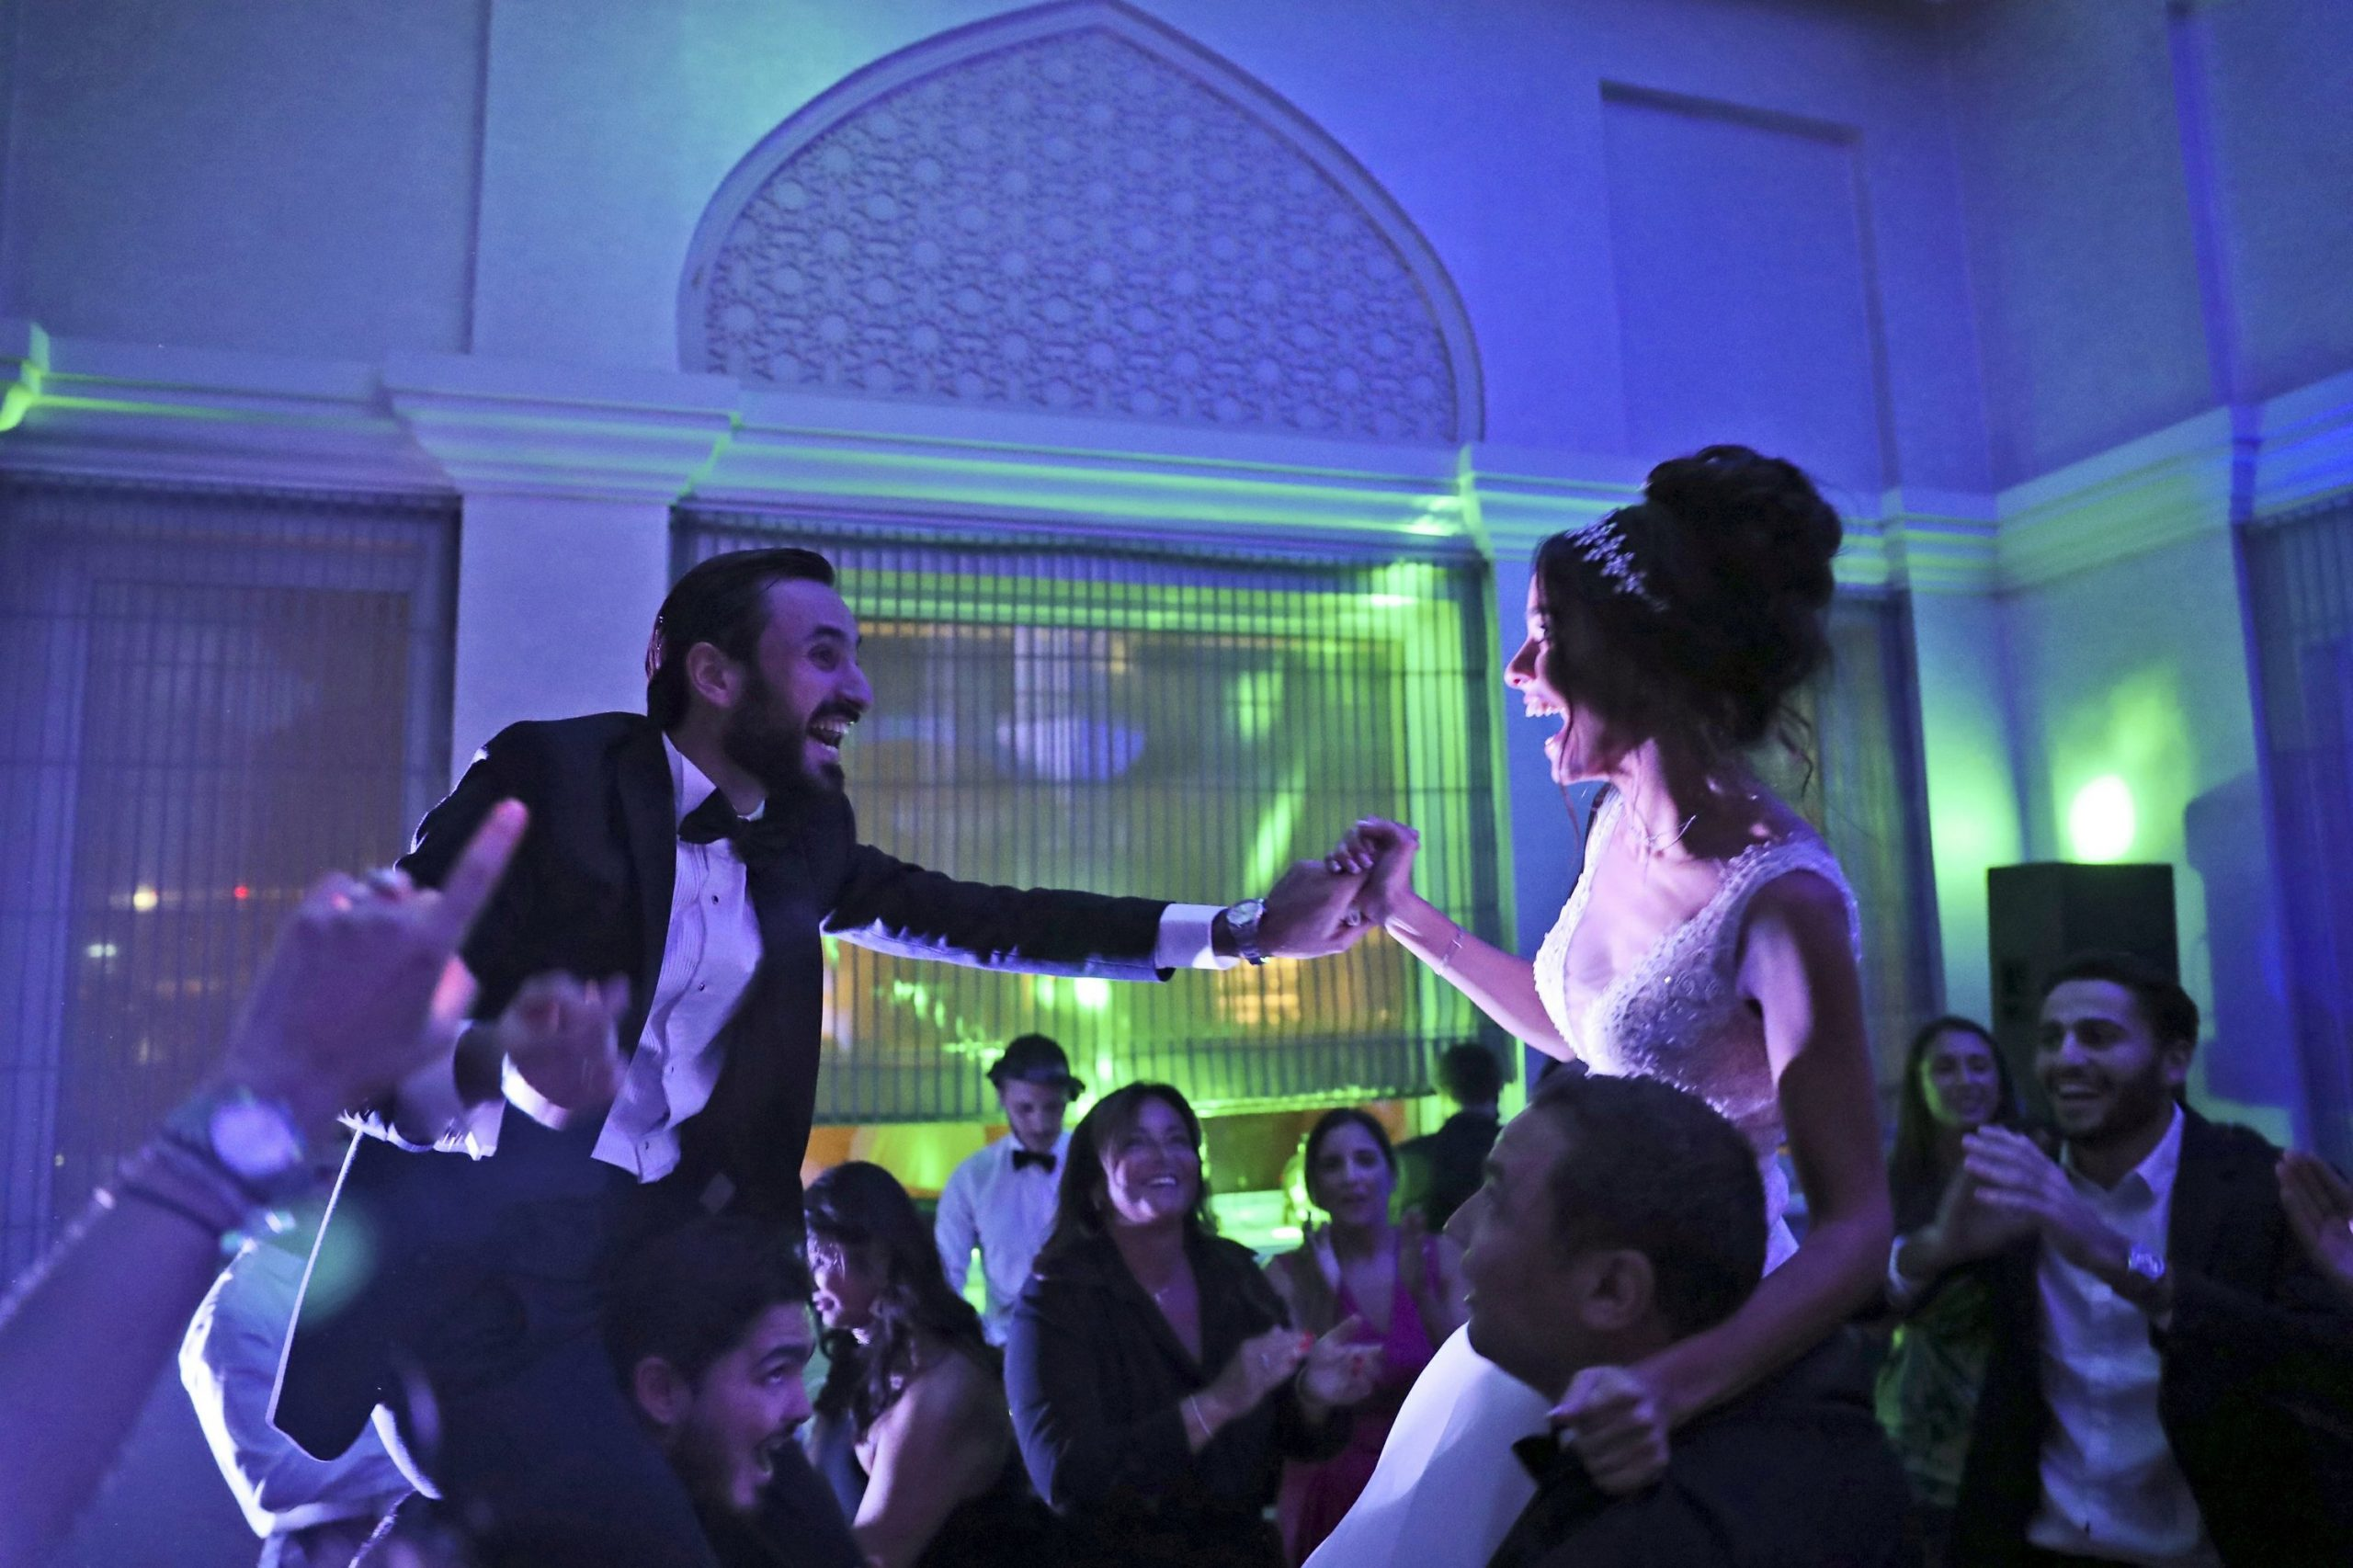 On Dubai's new playground, Israelis find Jewish parties and rituals